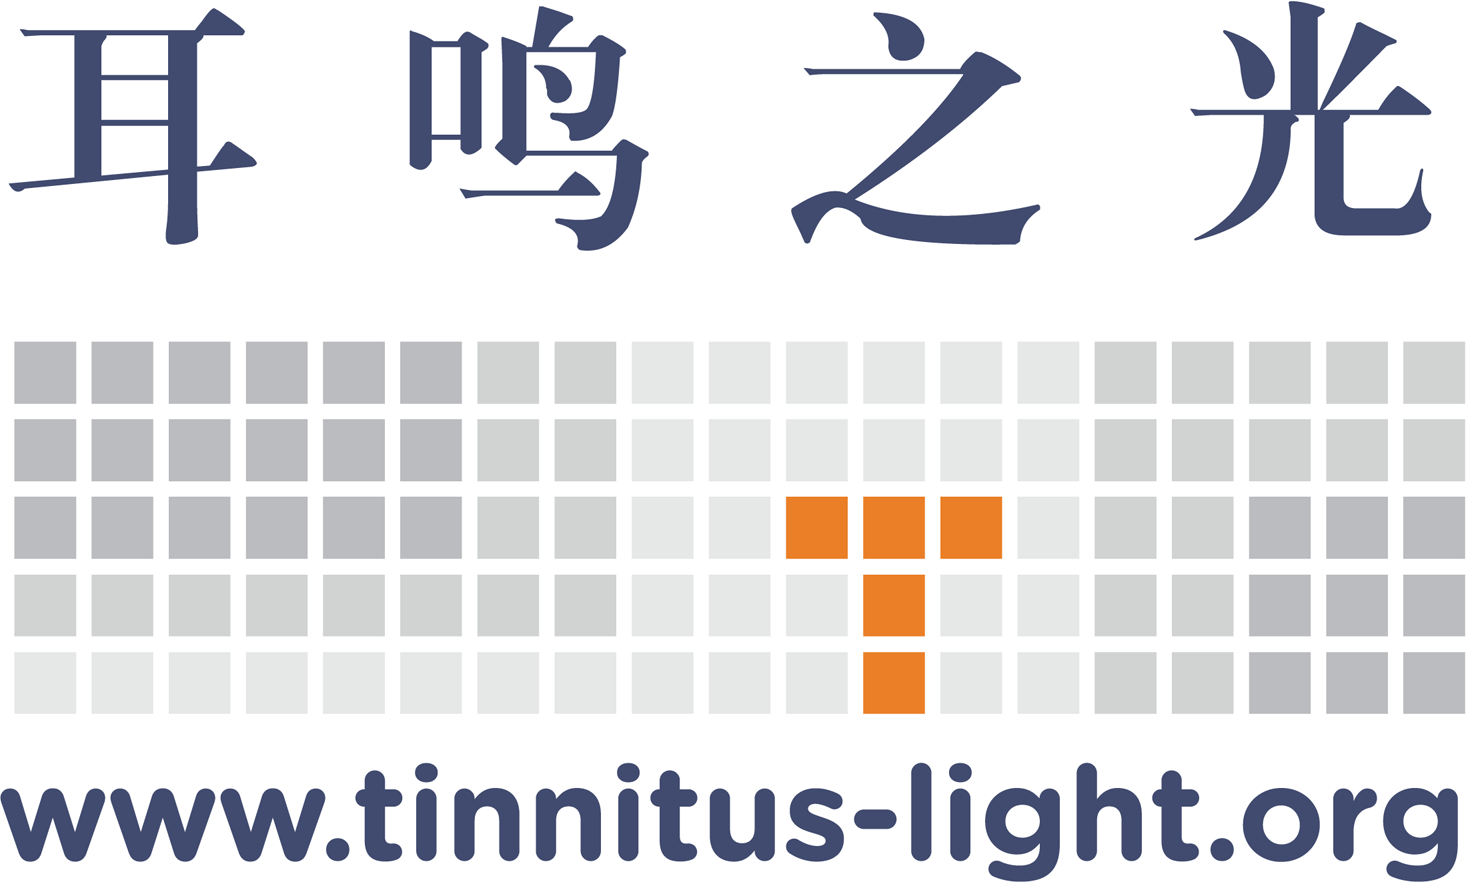 Tinnitus-light